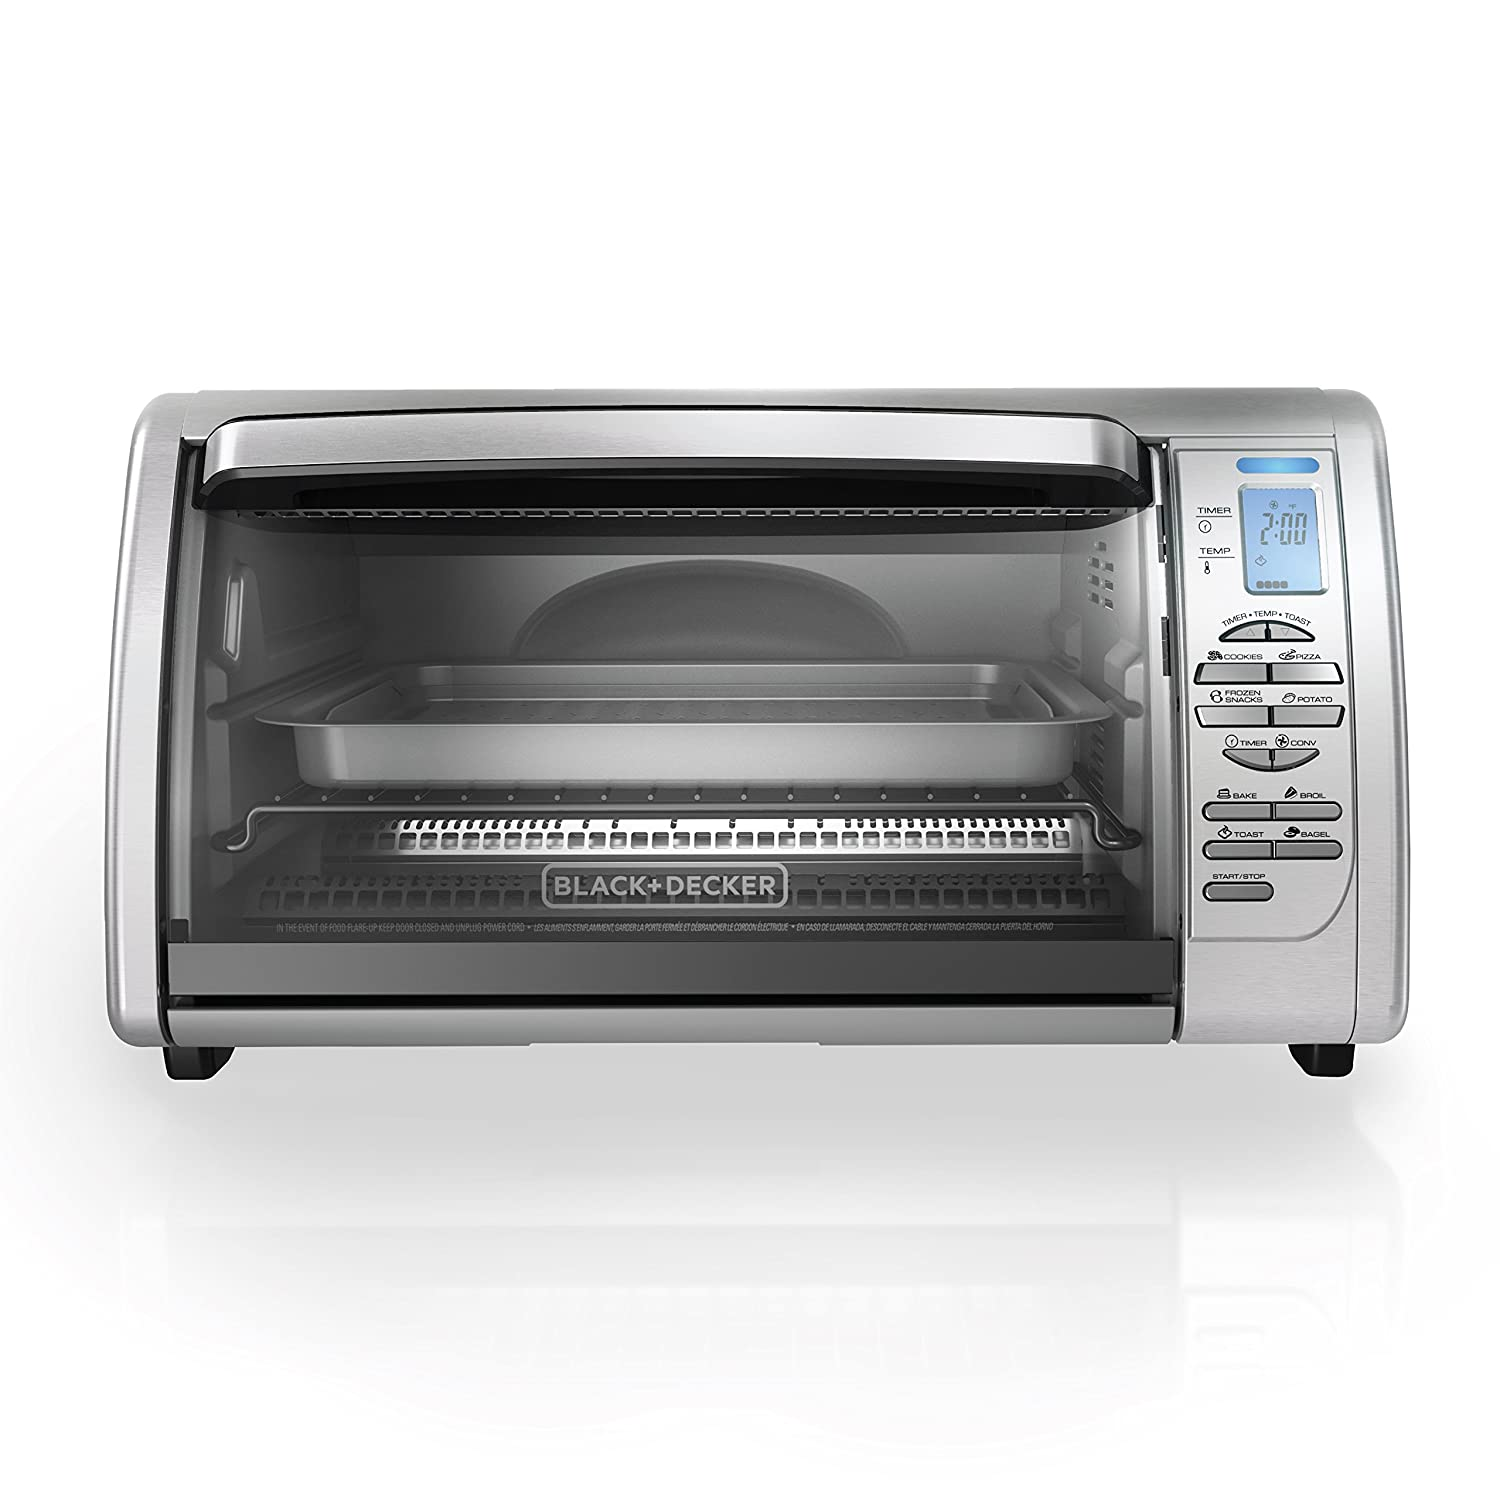 Countertop Oven Price : How to Choose the Best Countertop Oven: All You Need to Know - Food ...